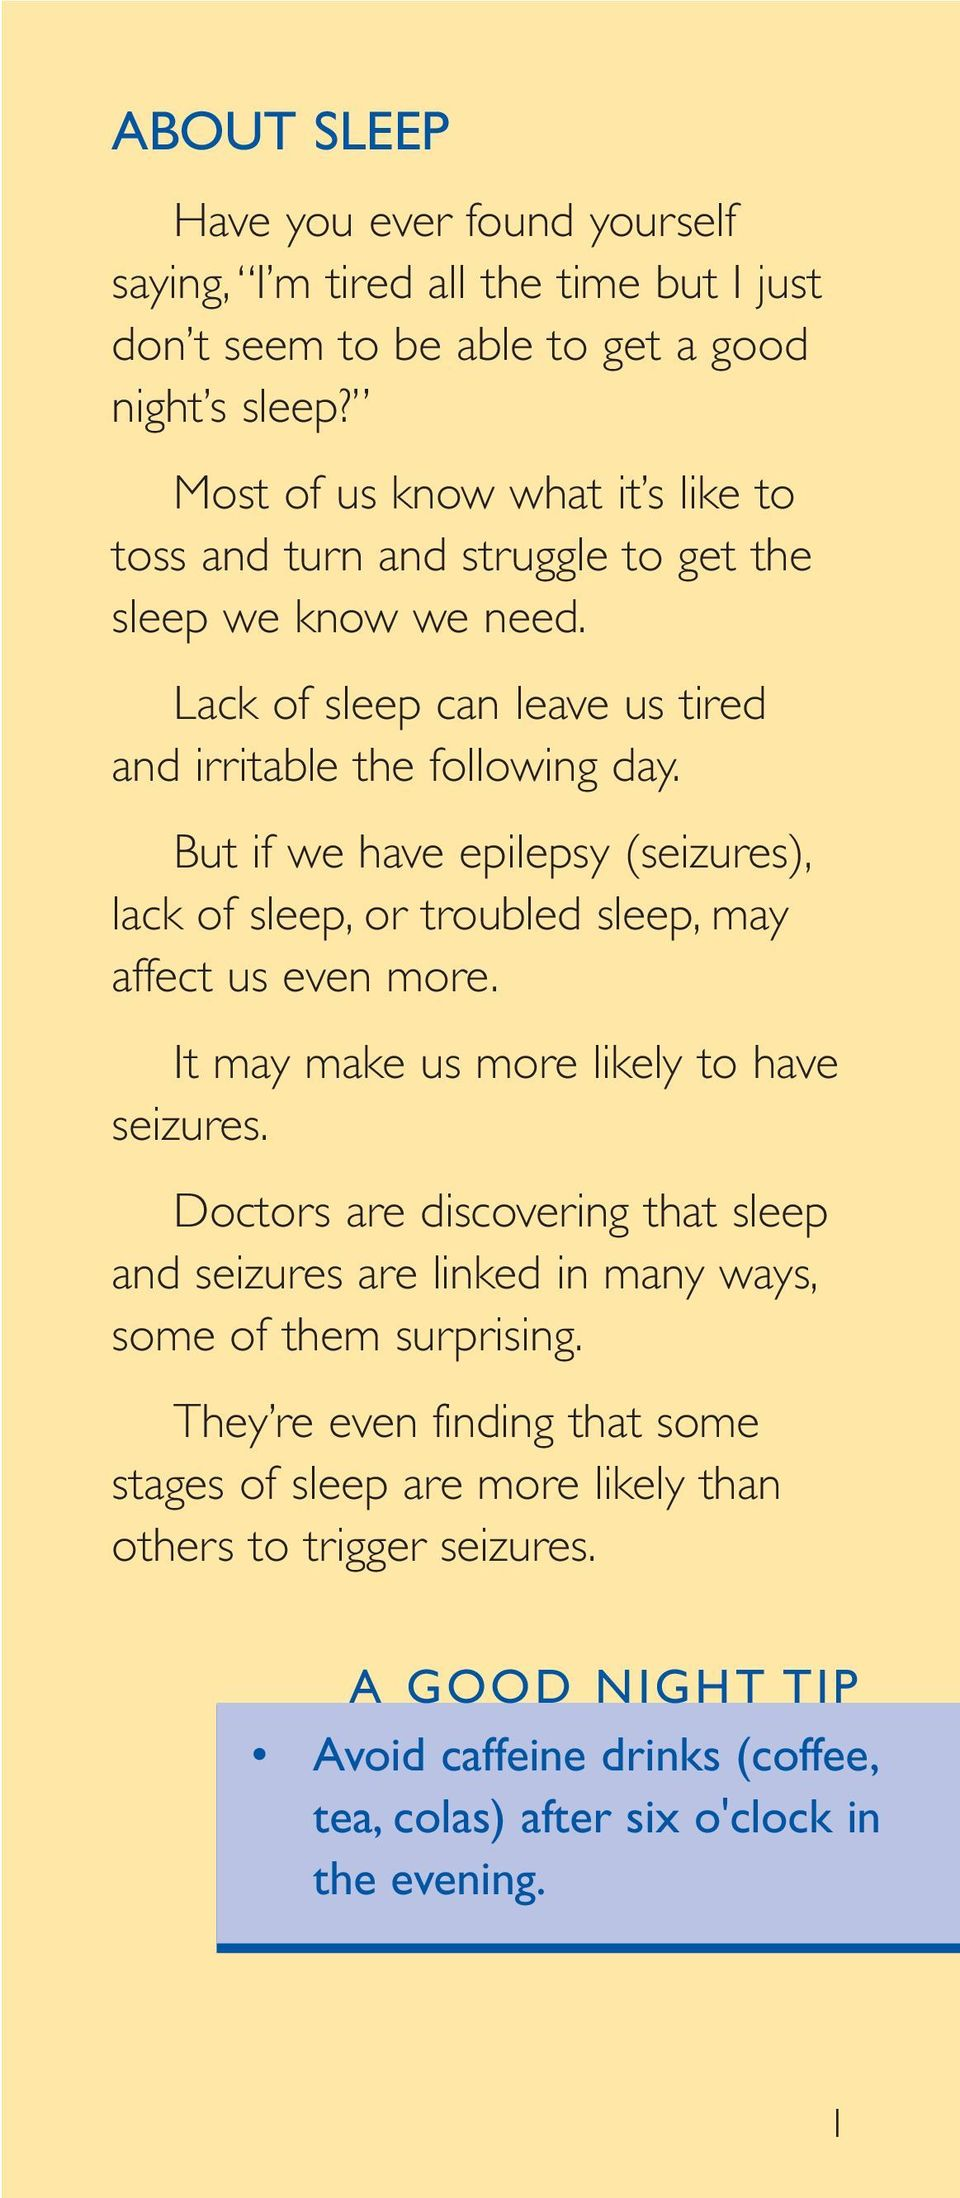 But if we have epilepsy (seizures), lack of sleep, or troubled sleep, may affect us even more. It may make us more likely to have seizures.